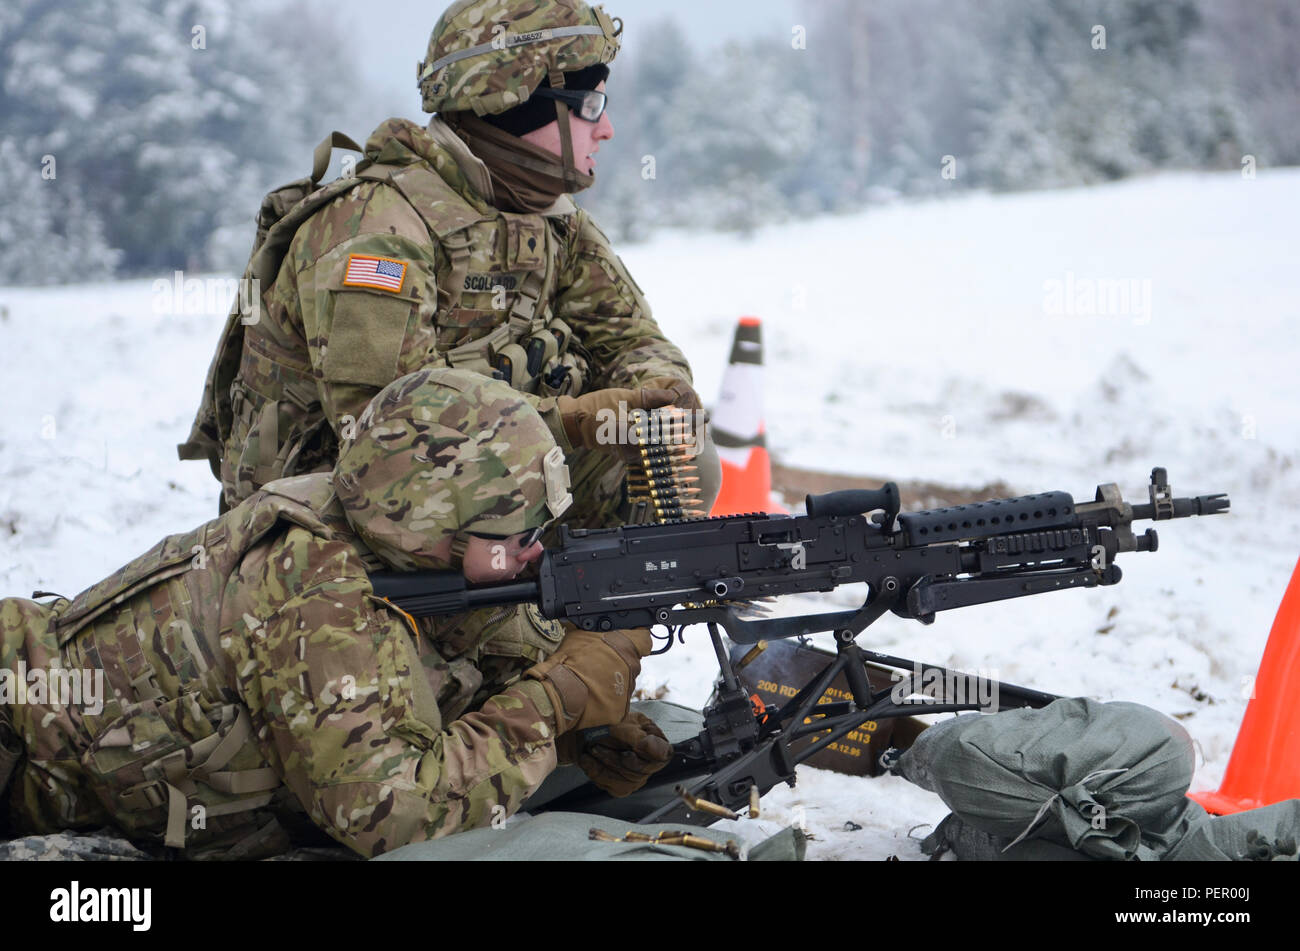 Pvt. Gage Adams, a scout and native from Springboro, Pa., fires an M240 machine gun as Spc. Michael Scollard, a radiotelephone operator, originally from Springfield, Va., both with 3rd Squadron, 2nd Cavalry Regiment, stationed at Vilseck, Germany, feeds the ammunition during a training exercise at Adazi Training Area in Latvia, Jan. 25, 2016. (U.S. Army photo by Staff Sgt. Steven Colvin/Released) - Stock Image